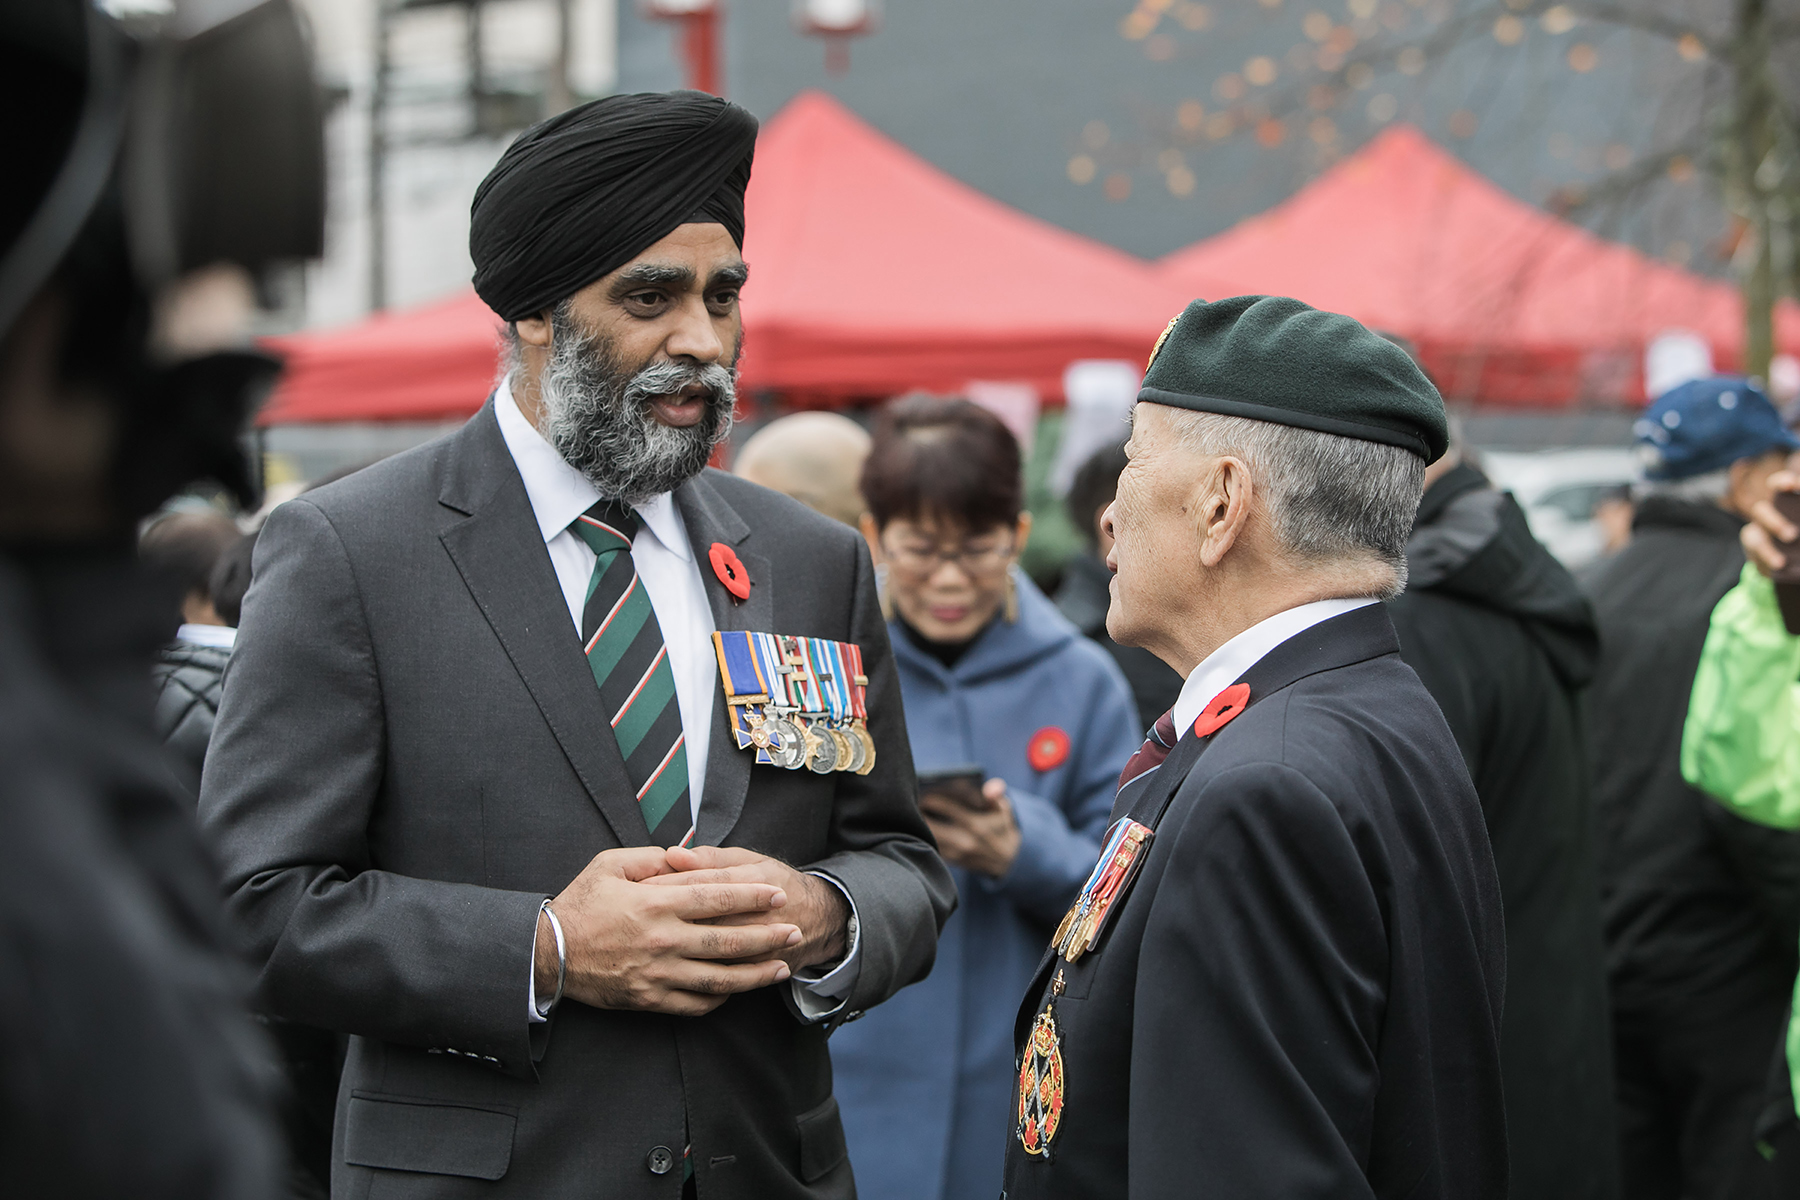 Harjit Sajjan, Minister of National Defence, speaks to a veteran at the Remembrance Day ceremony held in Vancouver, British Columbia's Chinatown on November 11, 2016. PHOTO: Bombardier Albert Law